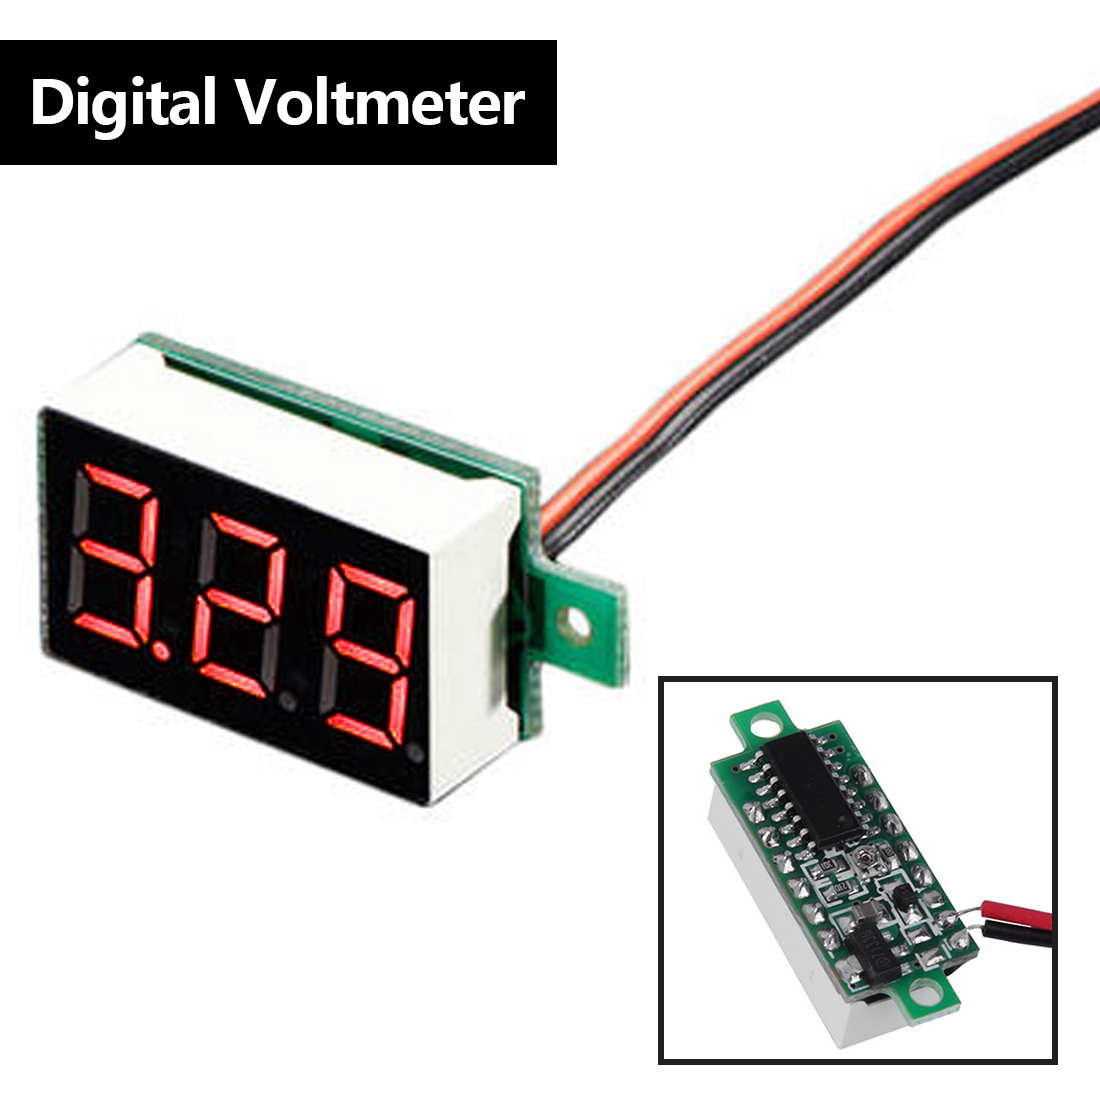 Voltmeter Voltage Tester Panel Meter Gauge 1pc LCD Digital Voltmeter Red LED Voltage Meter DC Amp Volt Meter Gauge nobrand rakbro60r